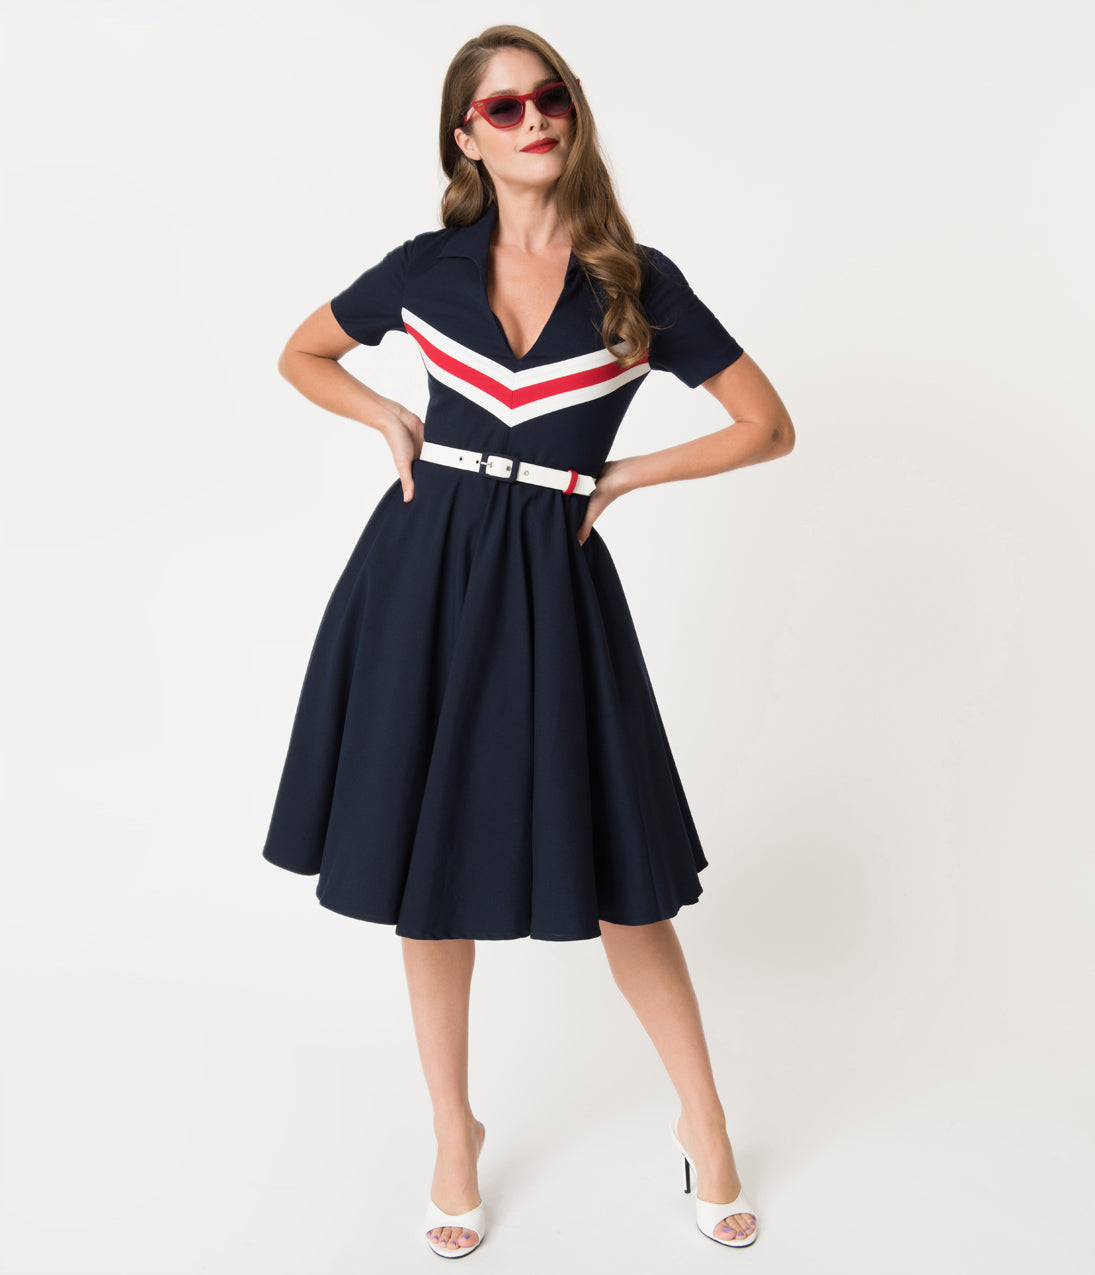 1960s Dresses | 60s Dresses Mod, Mini, Jakie O, Hippie Glamour Bunny Navy Blue  Retro Stripes Short Sleeved June Swing Dress $142.00 AT vintagedancer.com